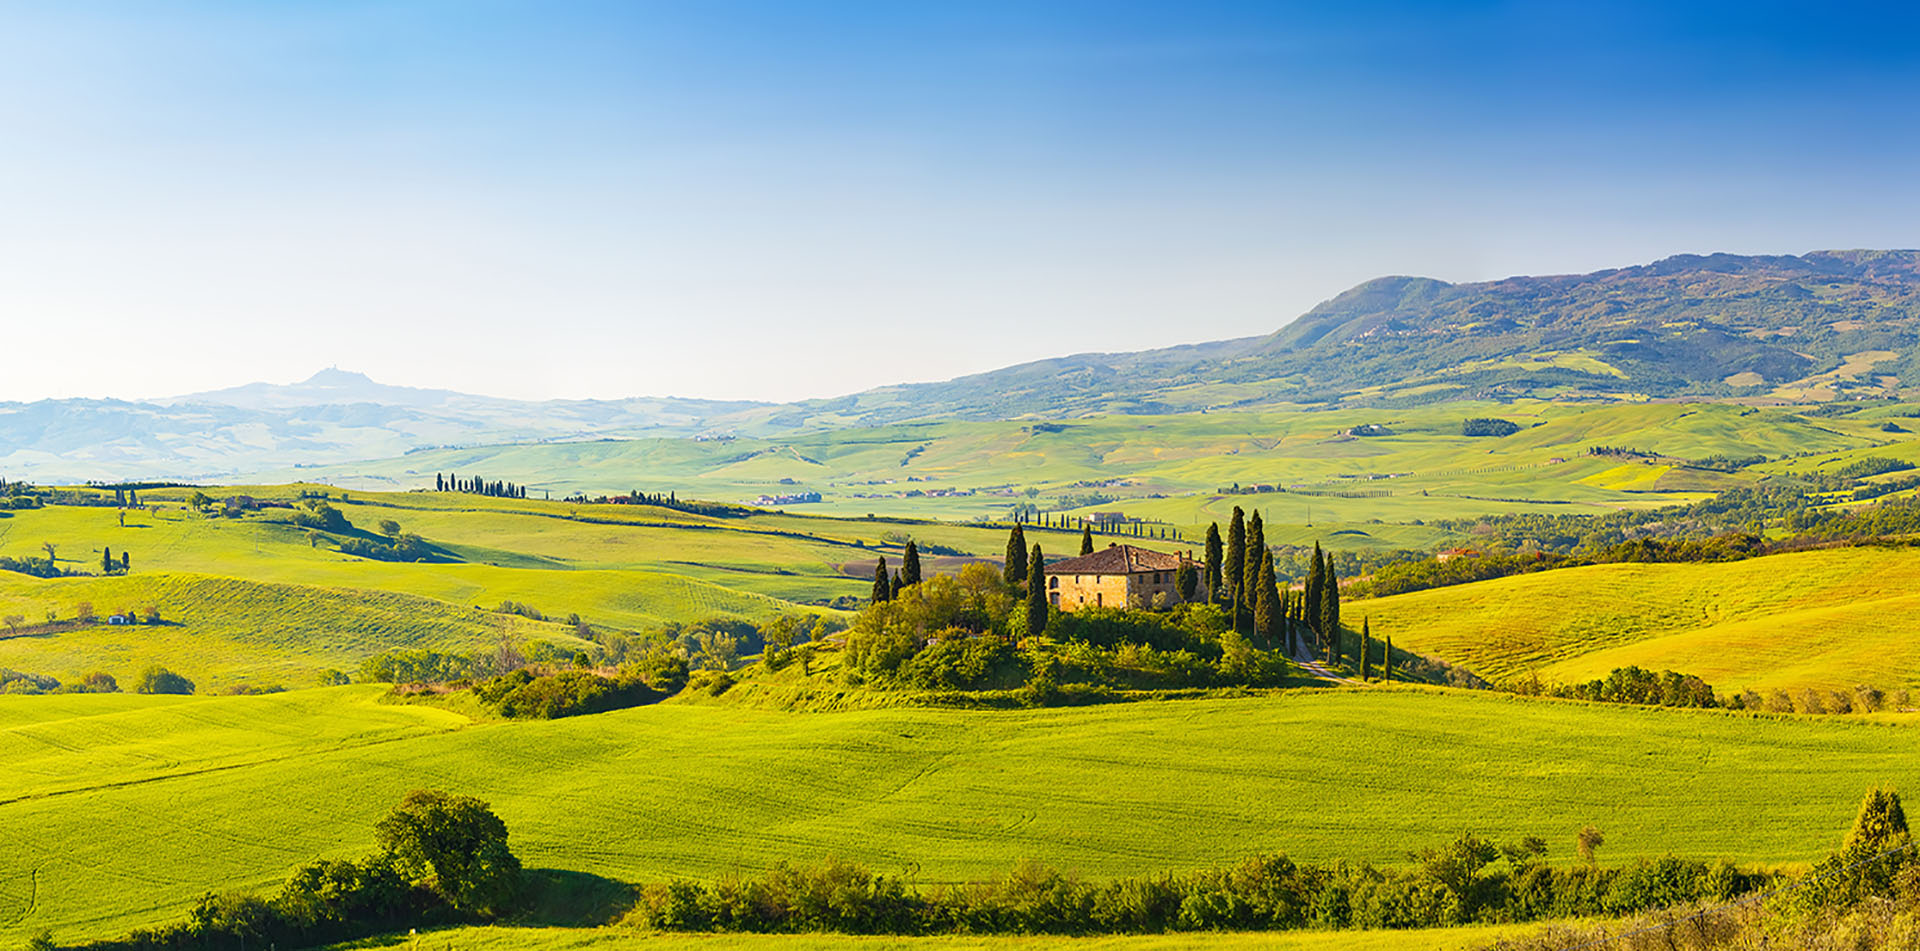 Countryside of Tuscany, Italy